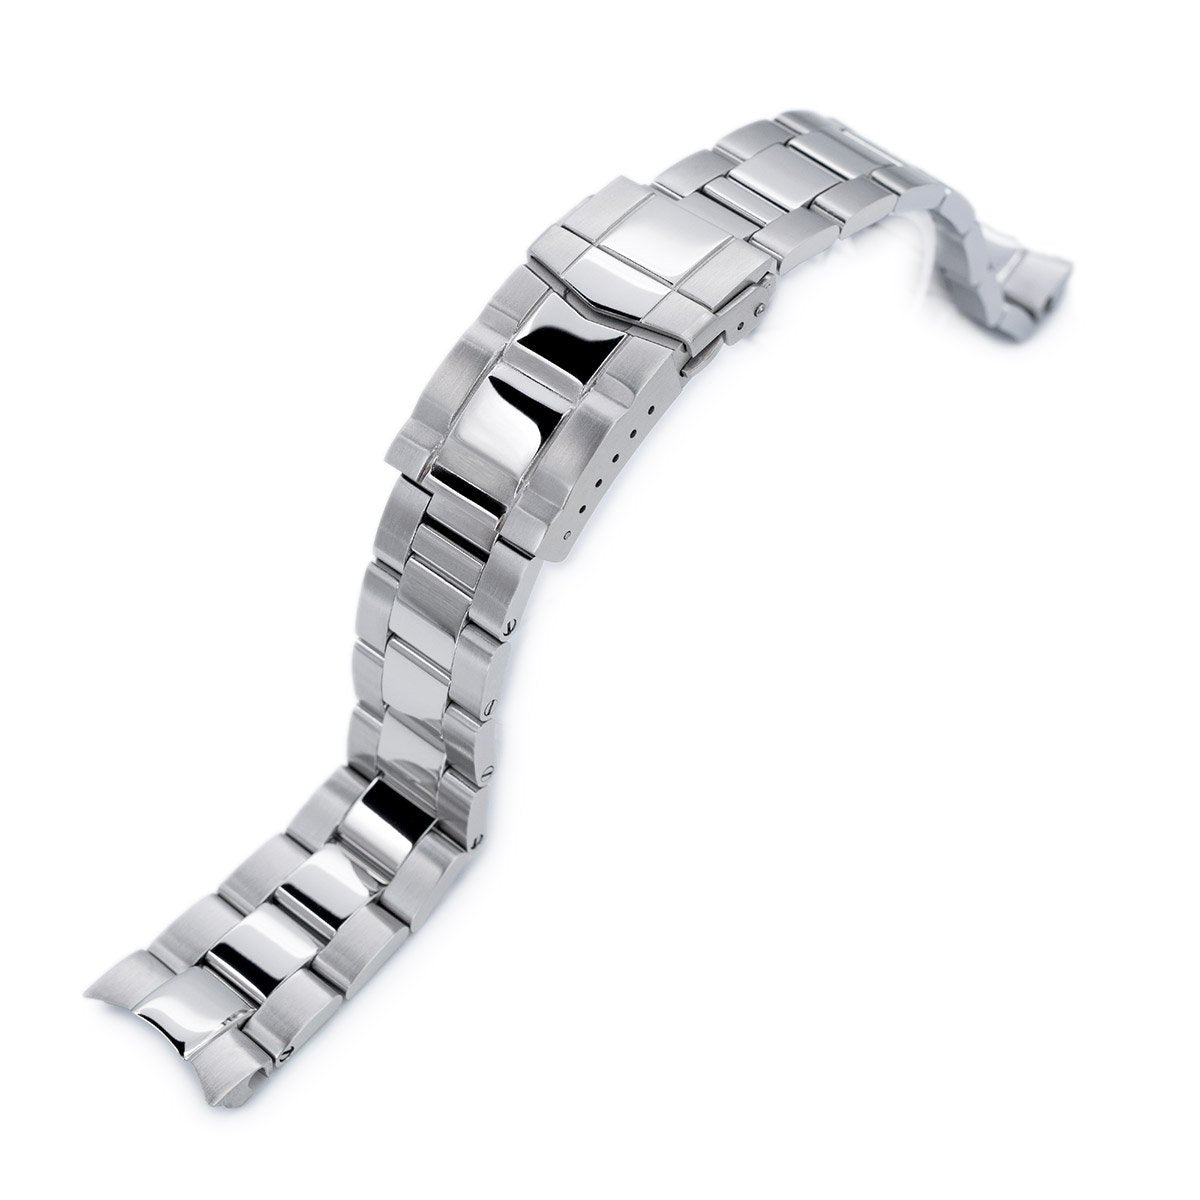 20mm Super-O Boyer 316L Stainless Steel Watch Bracelet for Seiko Mechanical Automatic SARB035 Polished & Brushed SUB Clasp Strapcode Watch Bands